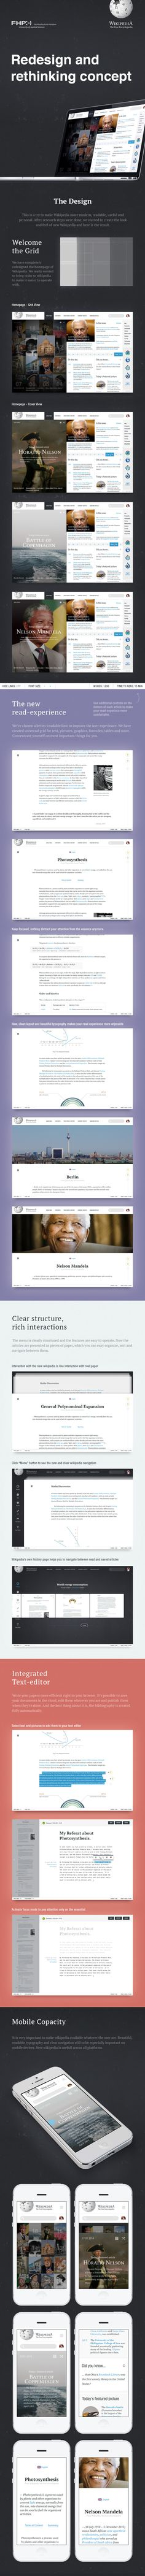 A nice Wikipedia redesign attempt. #redesign #responsive #bigsite #platform #ui #ux #design #interface